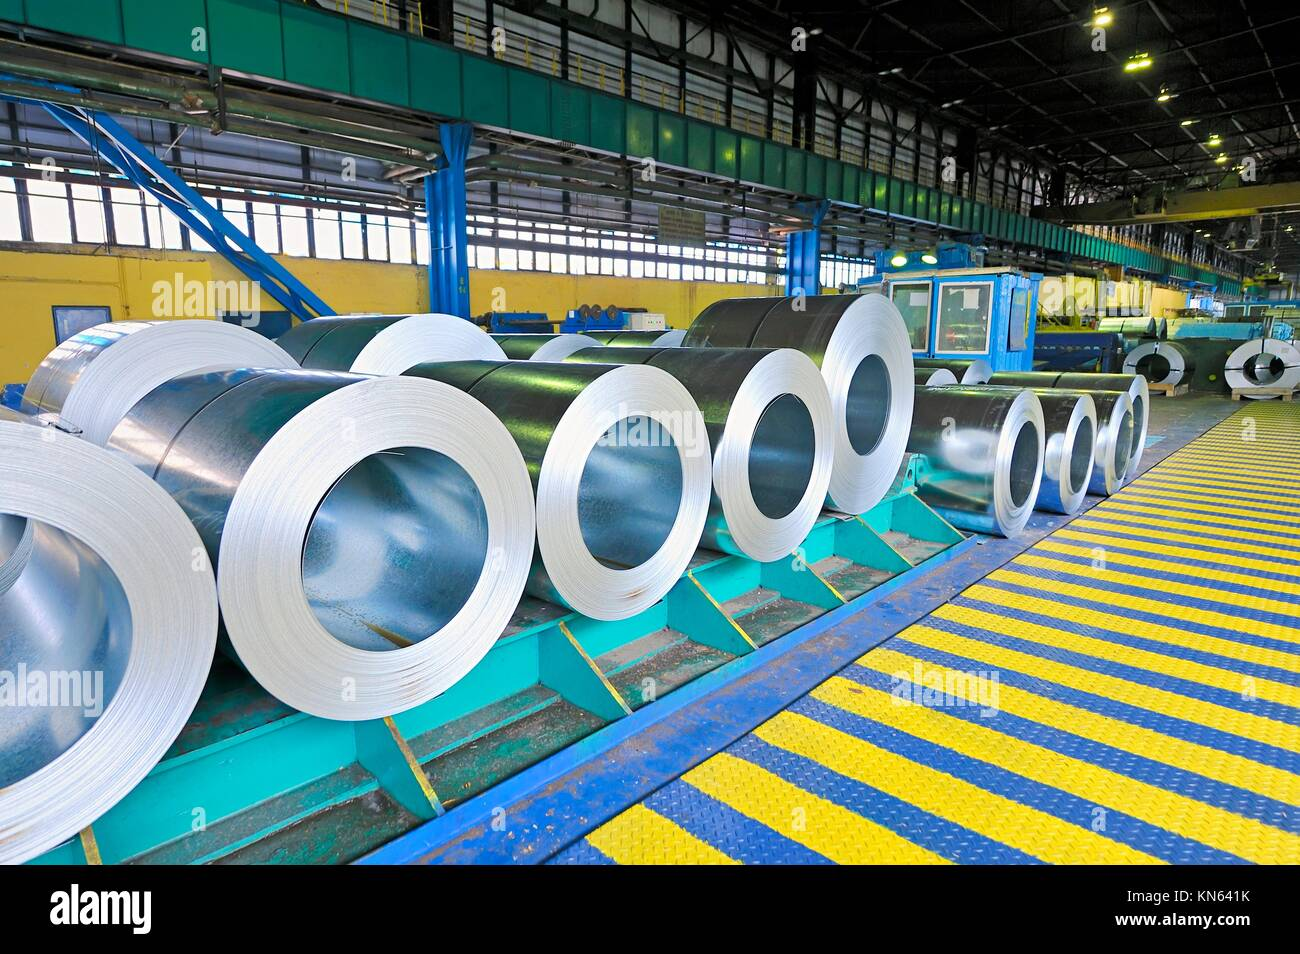 packed rolls of steel sheet. Stock Photo